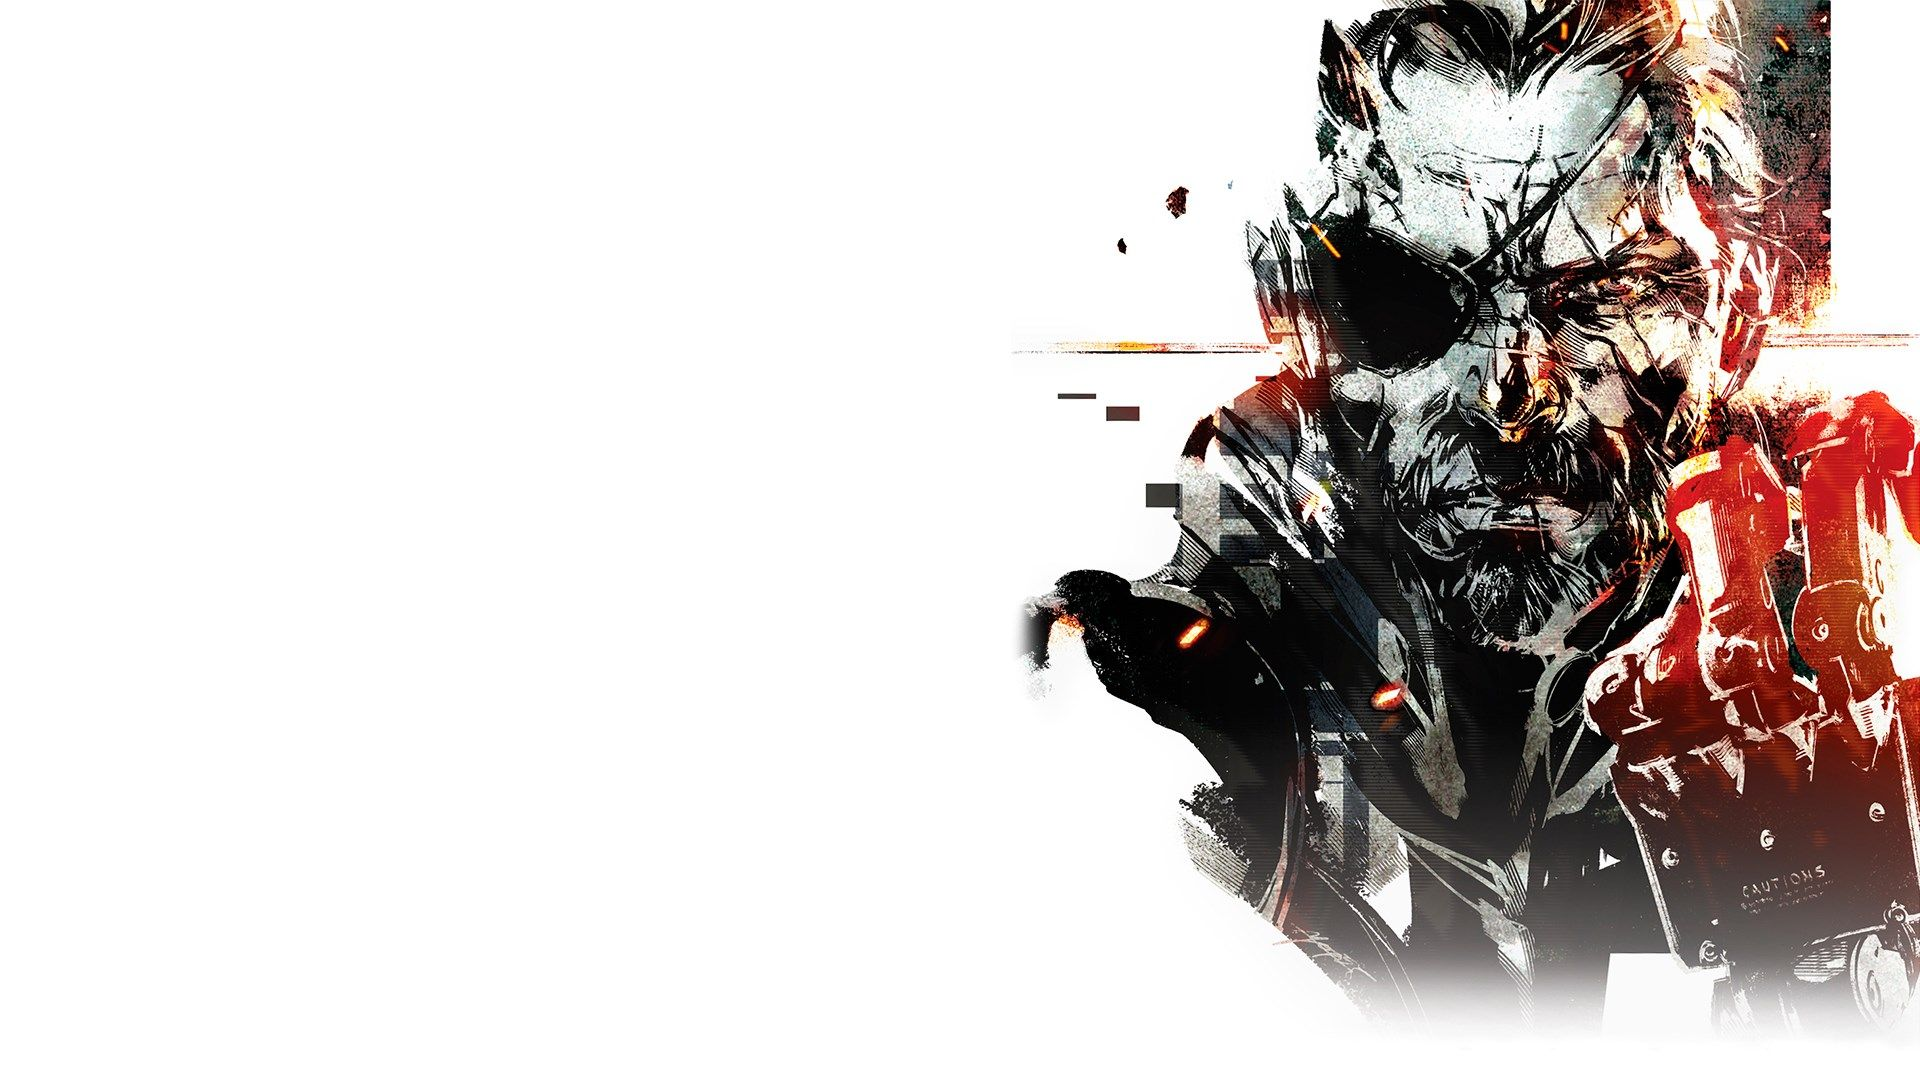 metal gear solid v the phantom pain image desktop nexus wallpaper